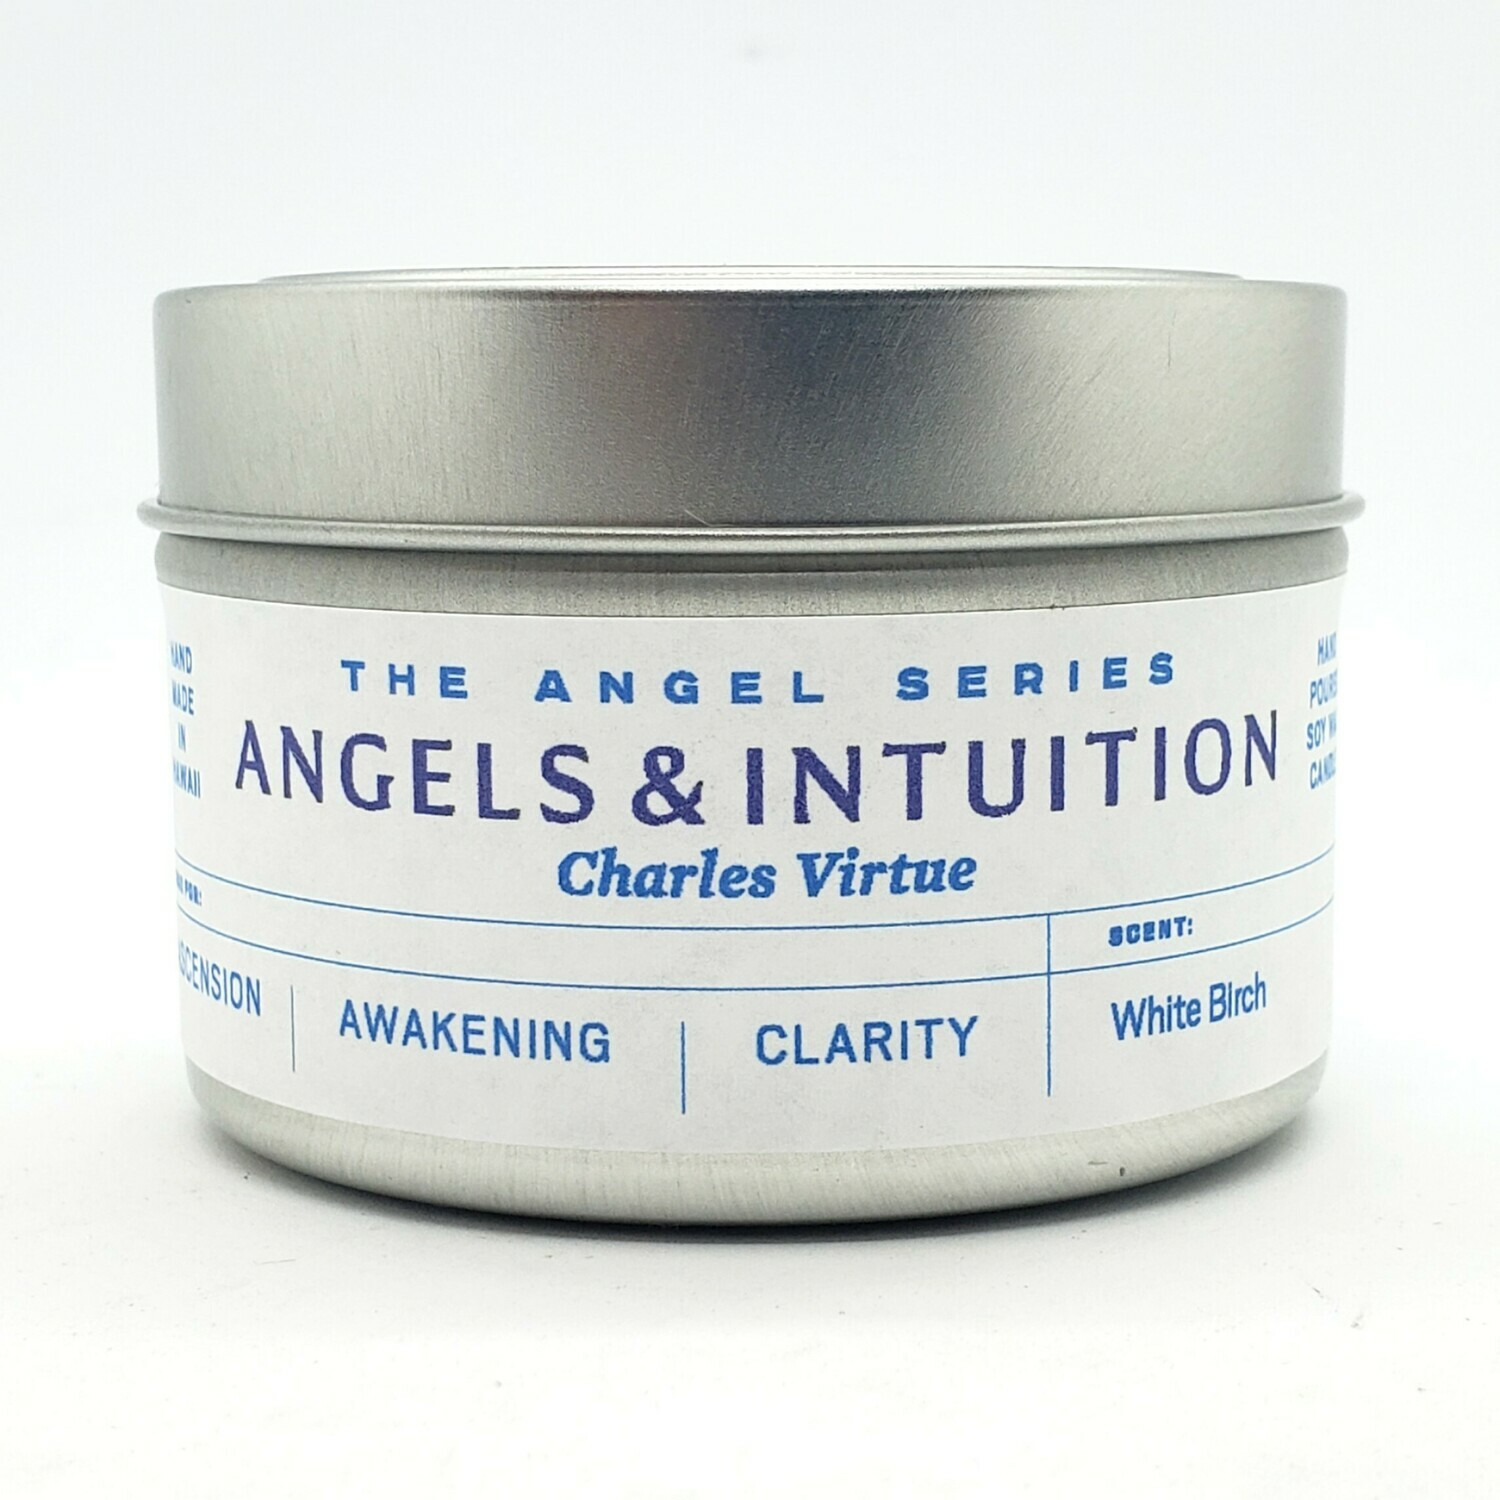 Angels and Intuition by Charles Virtue